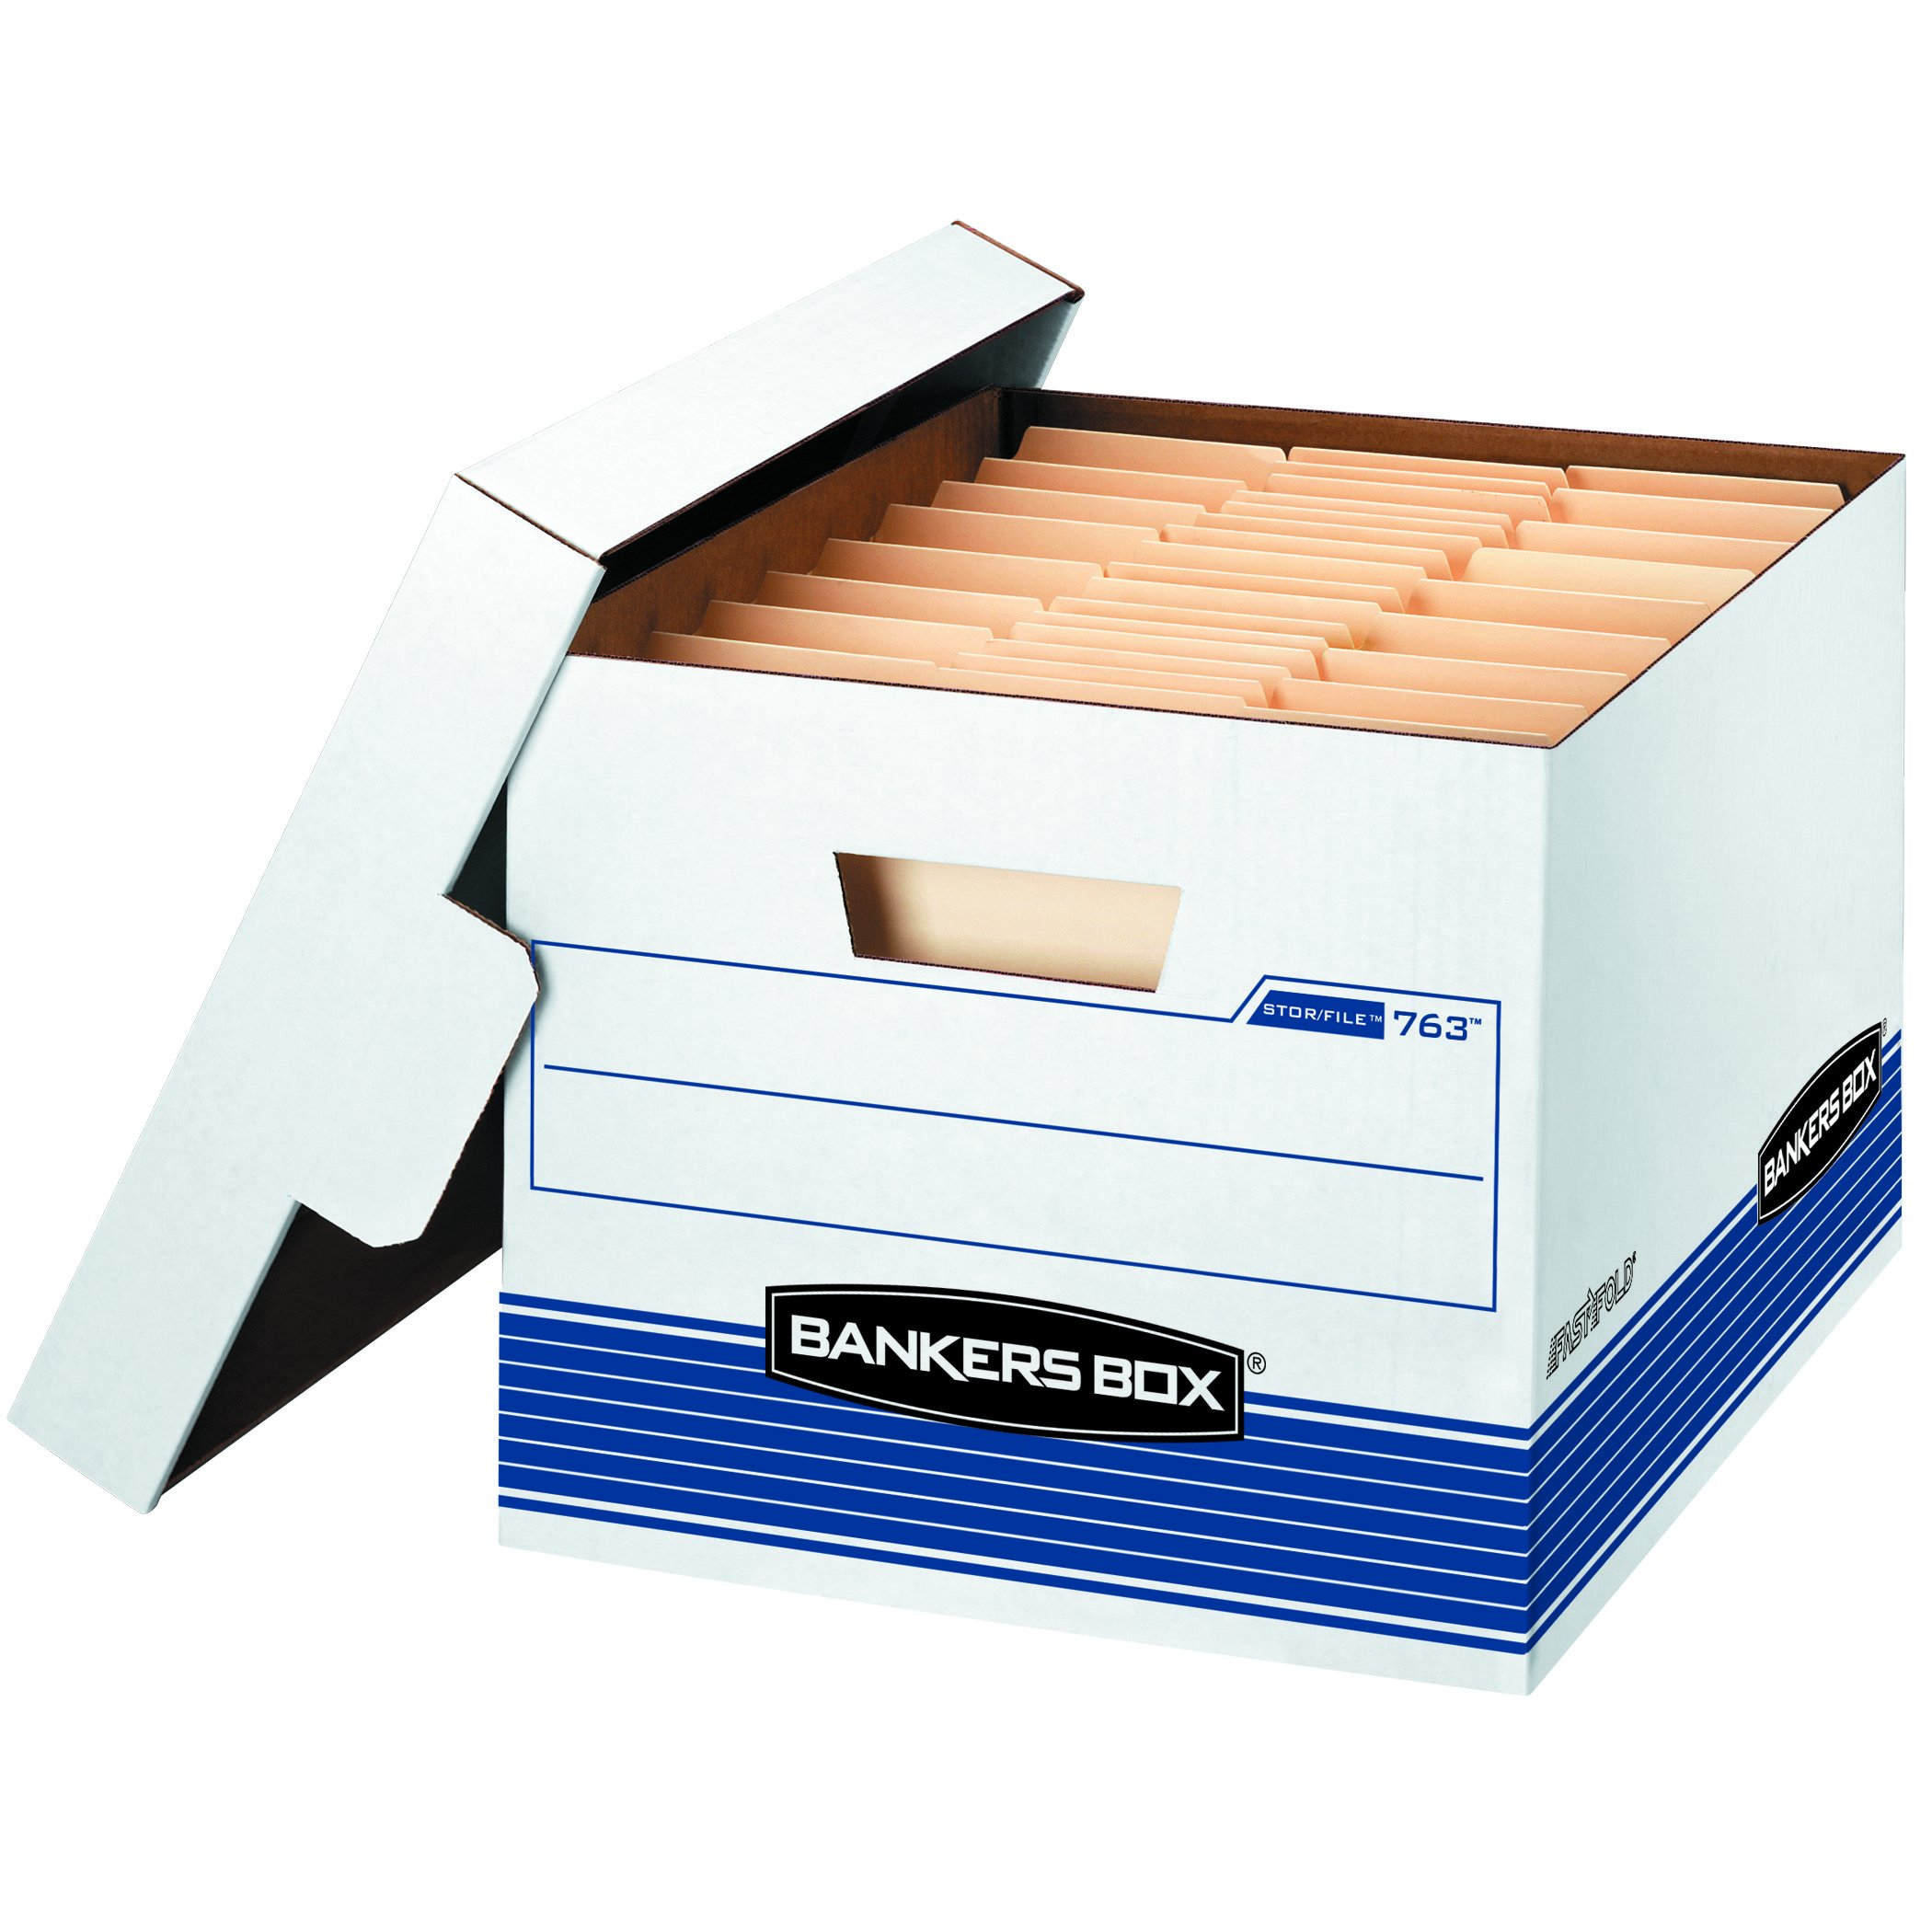 Bankers Box Stor/File Medium-Duty Storage Boxes, Letter/Legal, 30 Pack (0076316)